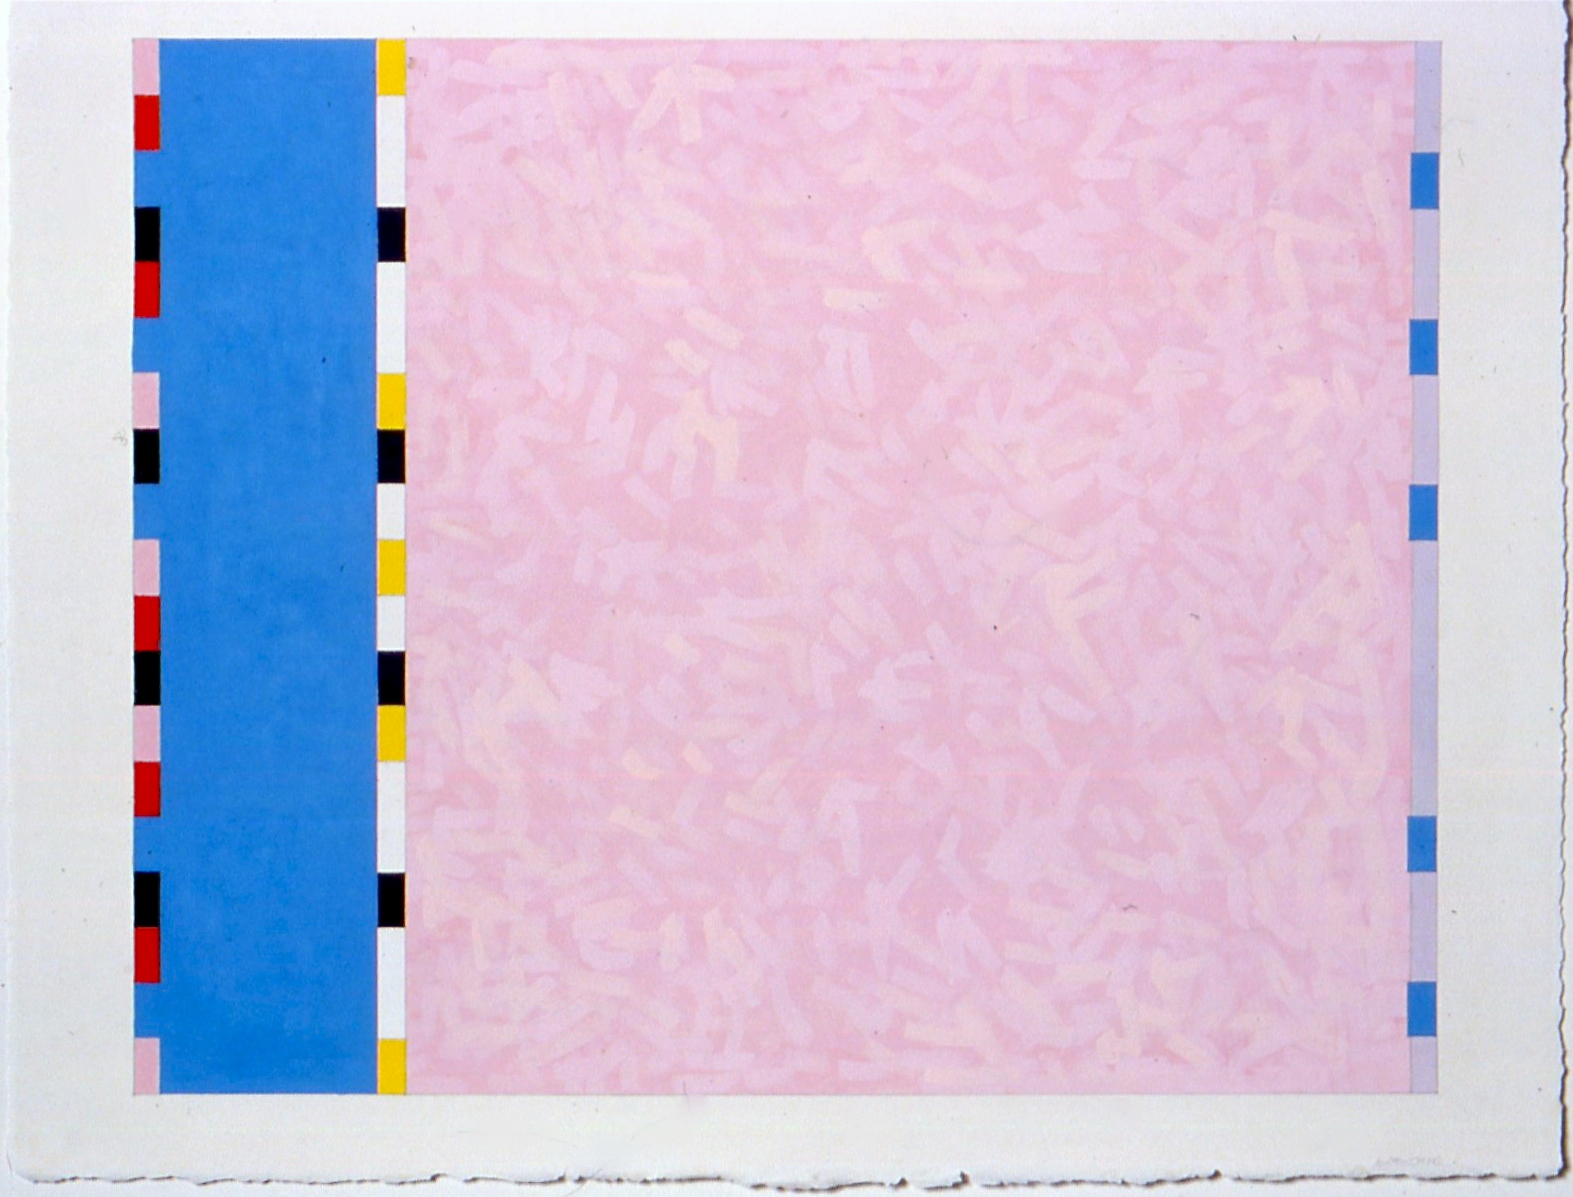 """Untitled (PG20), 2002, gouache and watercolour on paper, 20 3/16""""x25 1/2""""(image), 23""""x30 1/2"""" (paper)"""